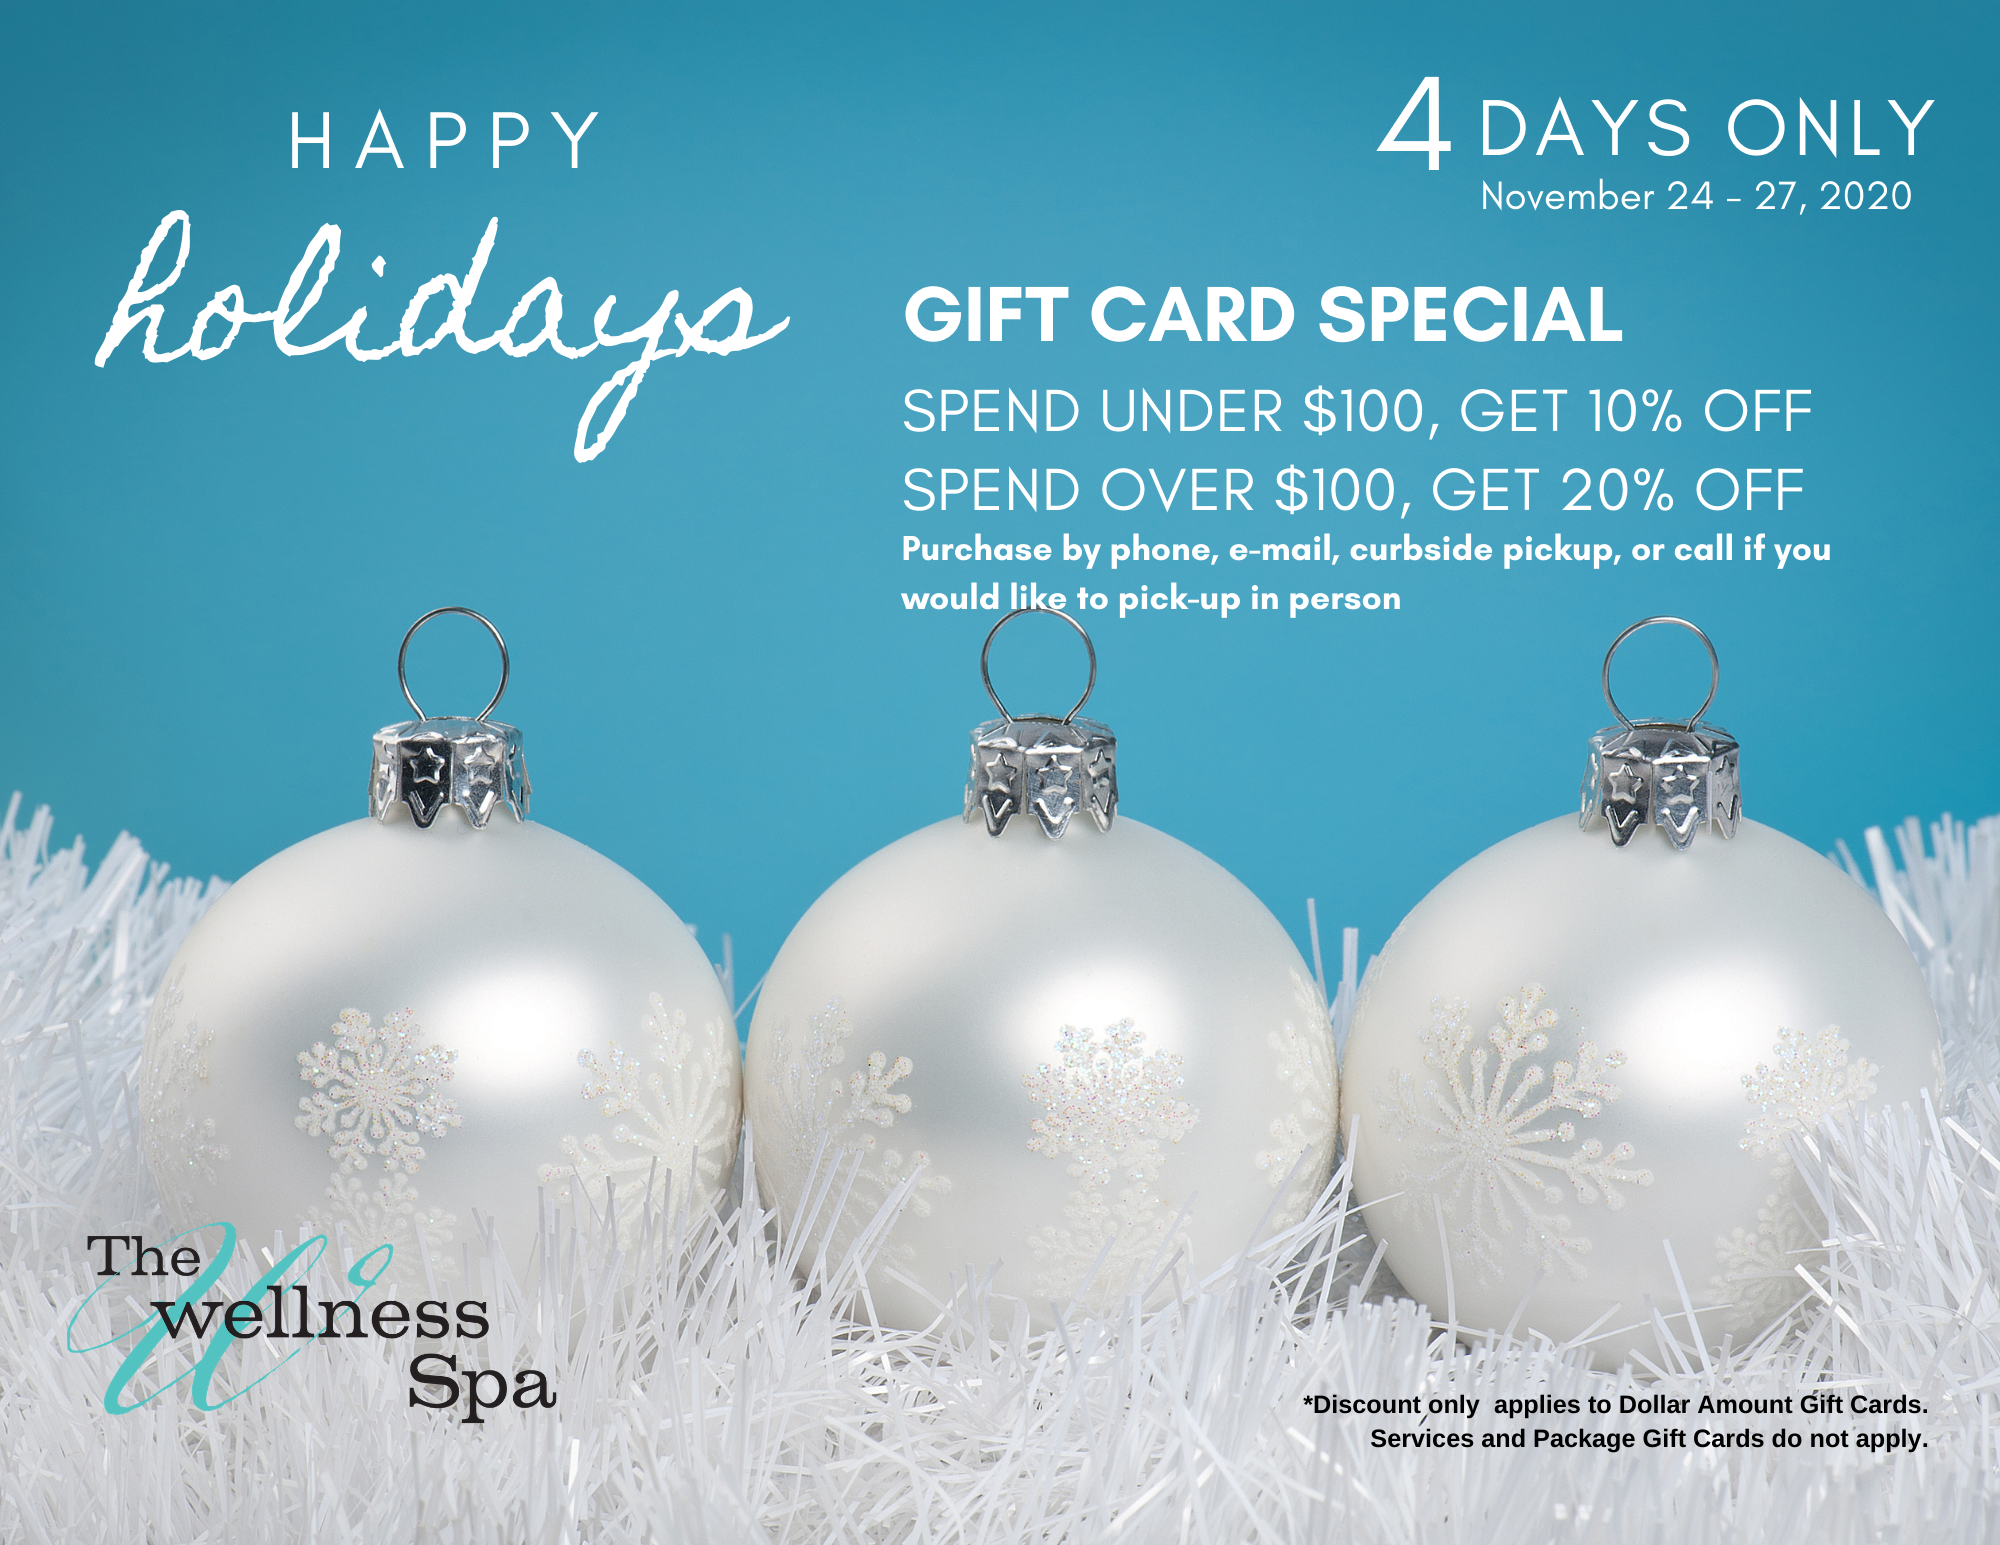 The Wellness Spa Gift Card Promotion.